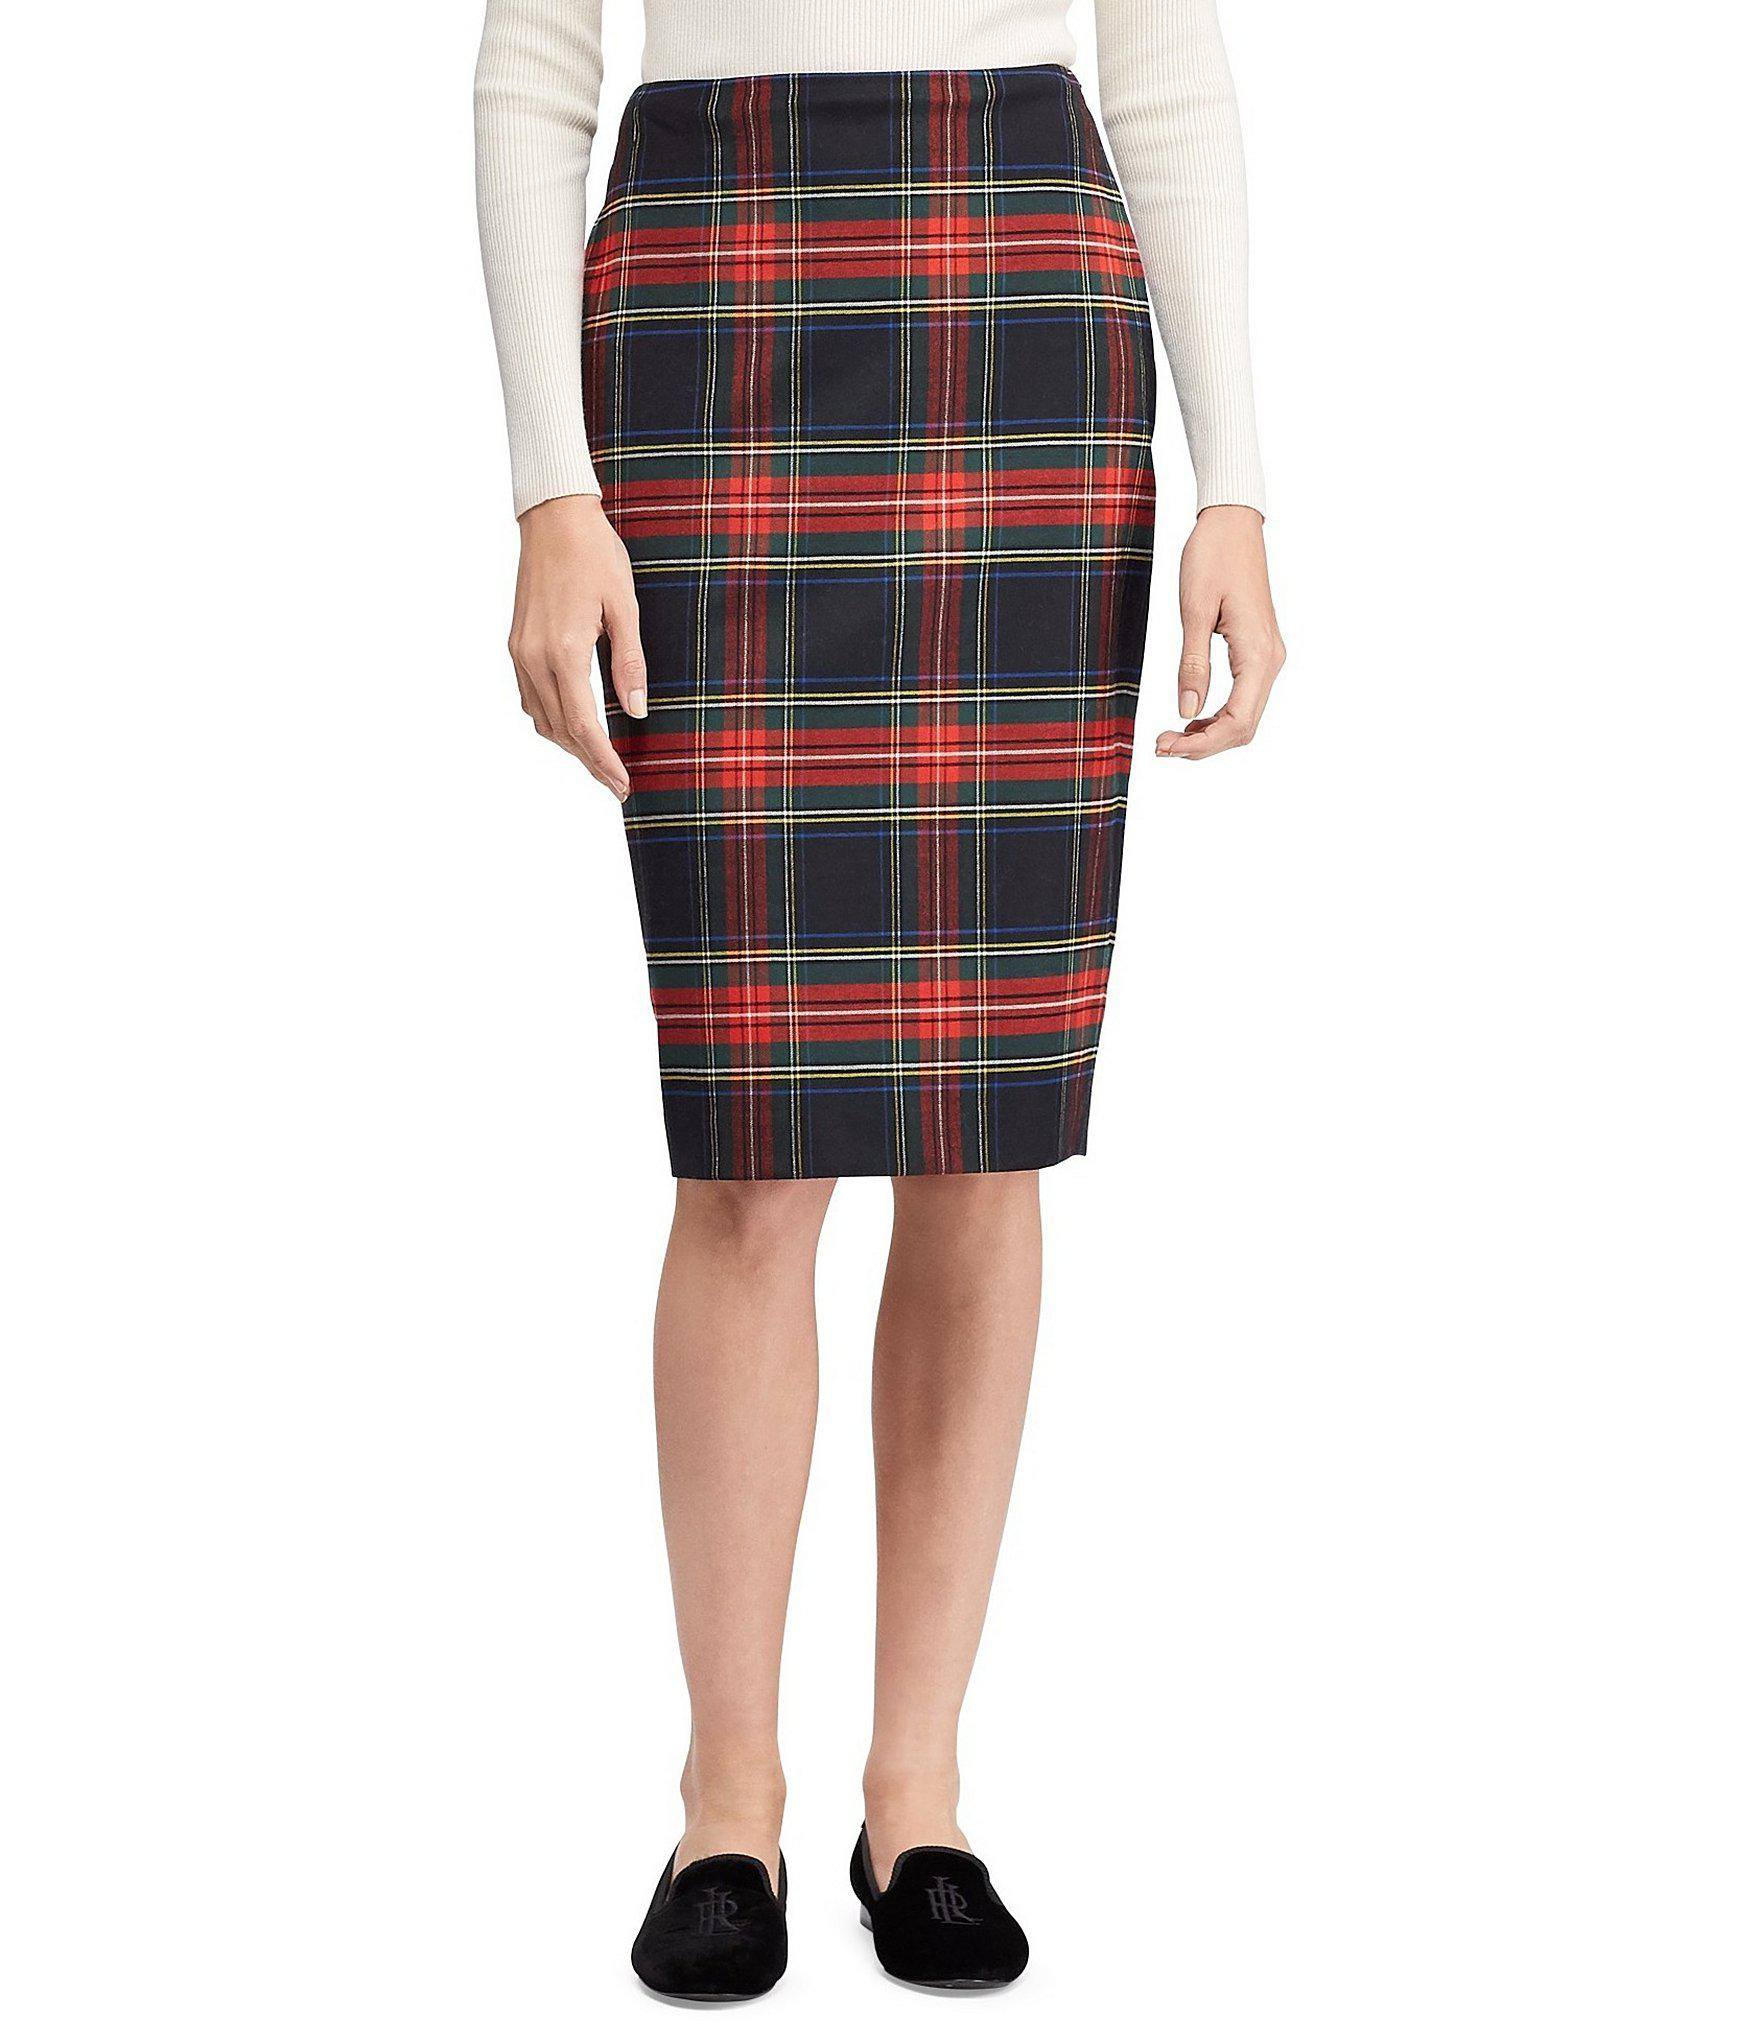 Blend Pencil Plaid Skirt By Lyst Lauren Tartan Ralph Wool CrdxeBo